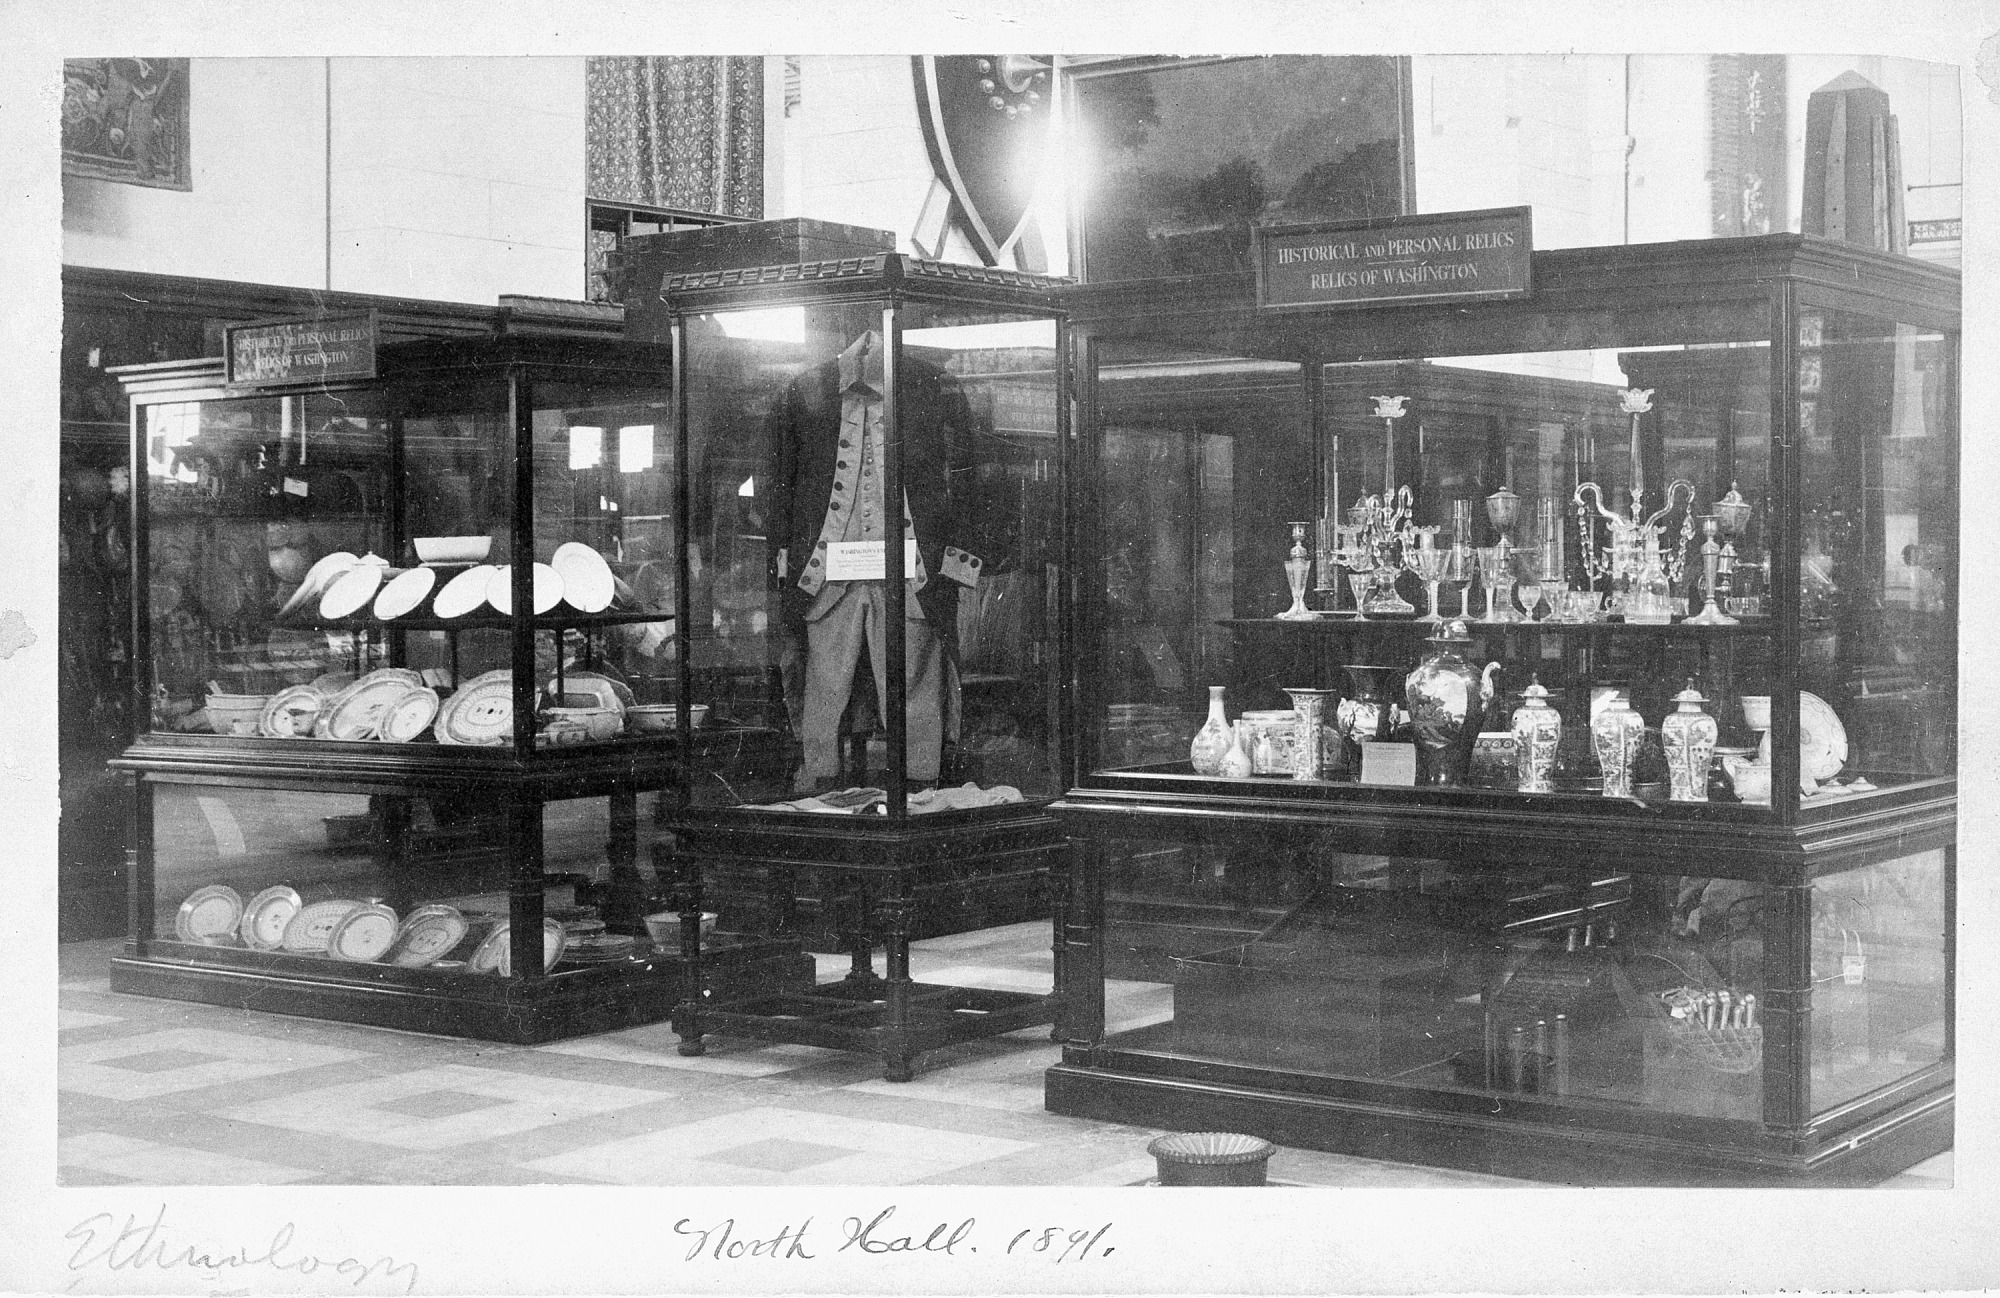 George Washington Relics on Display, 1891